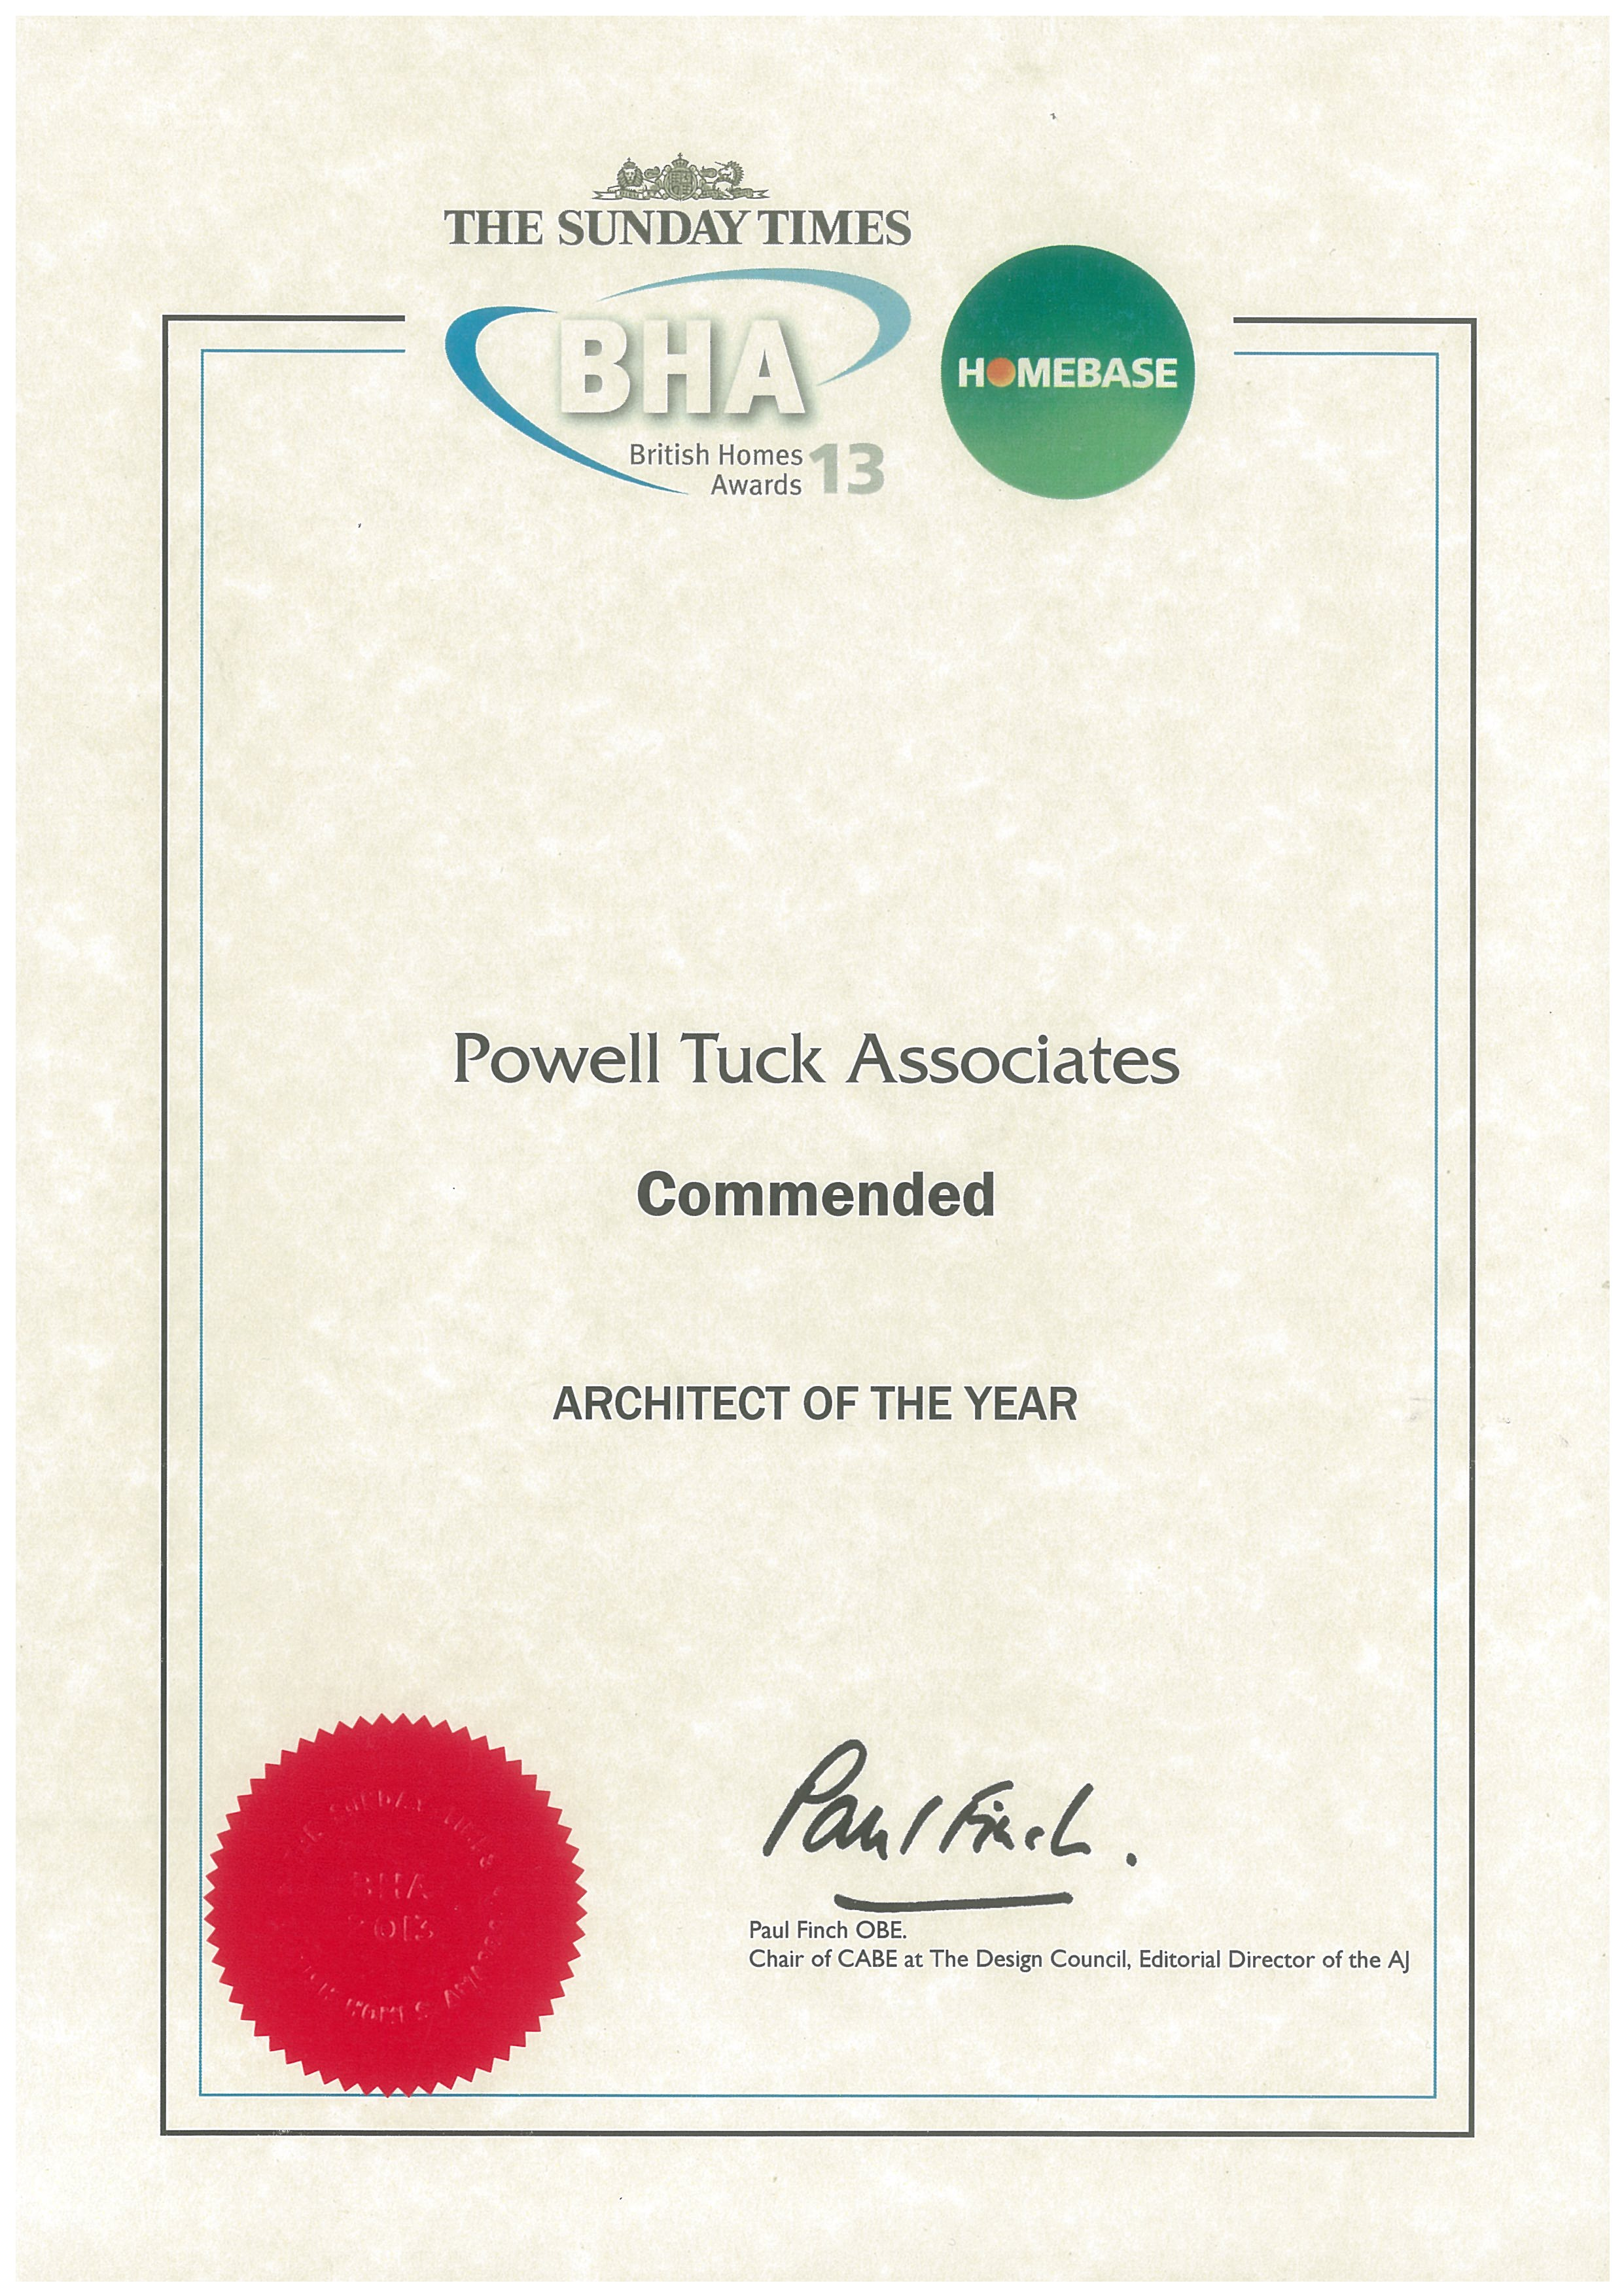 Architect of the Year, CommendedBritish Homes Awards 2013 -